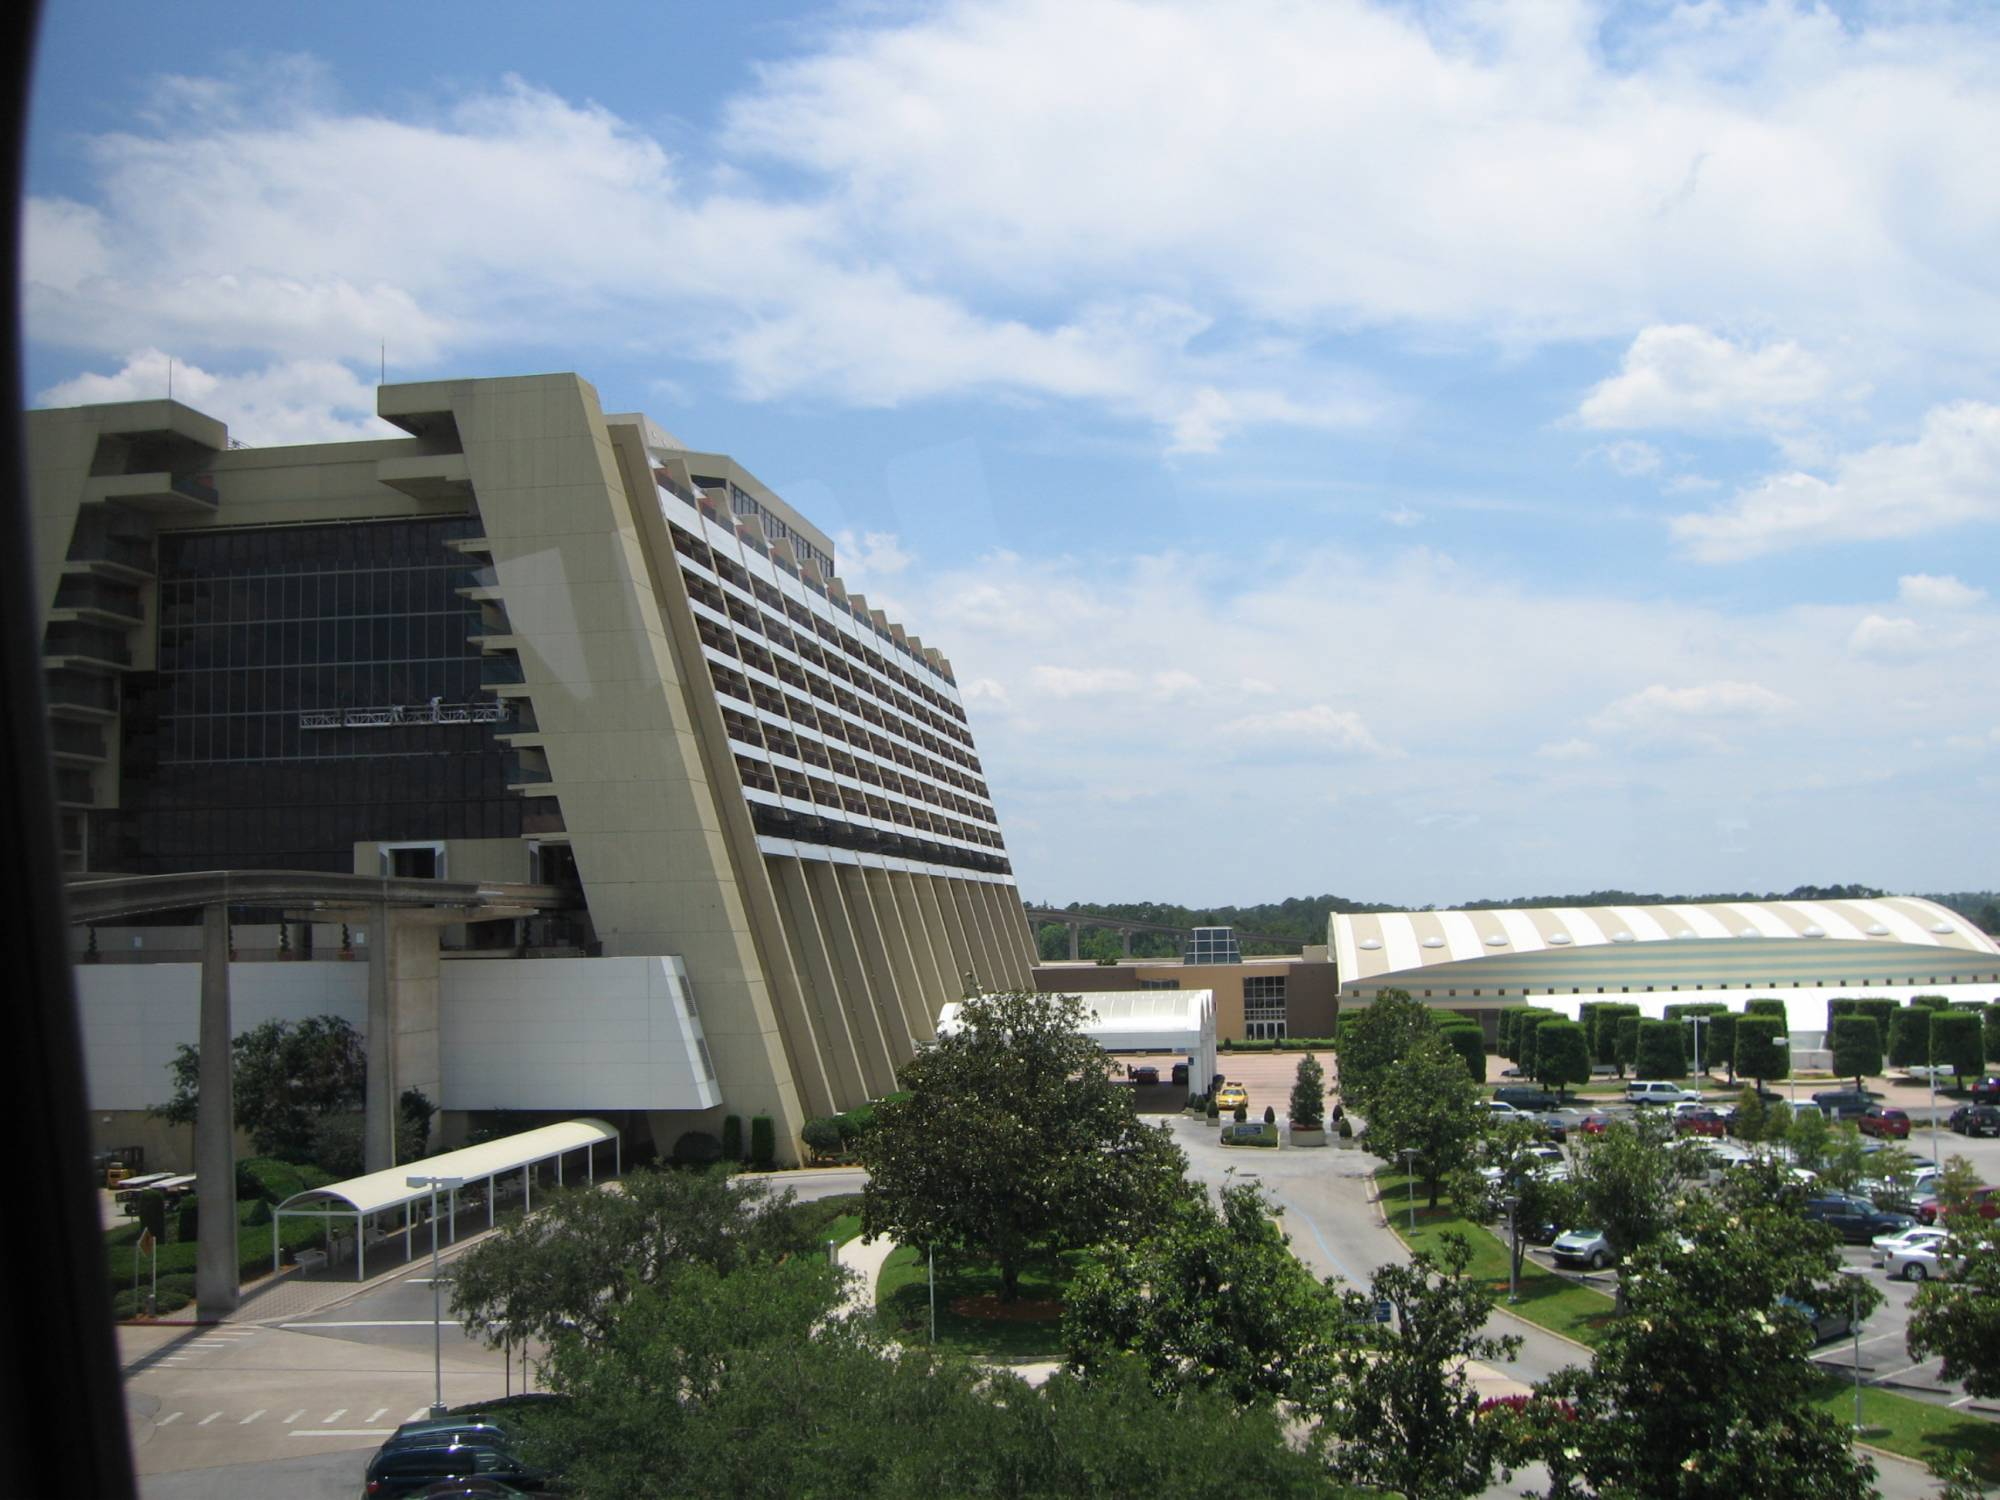 Contemporary - view from monorail